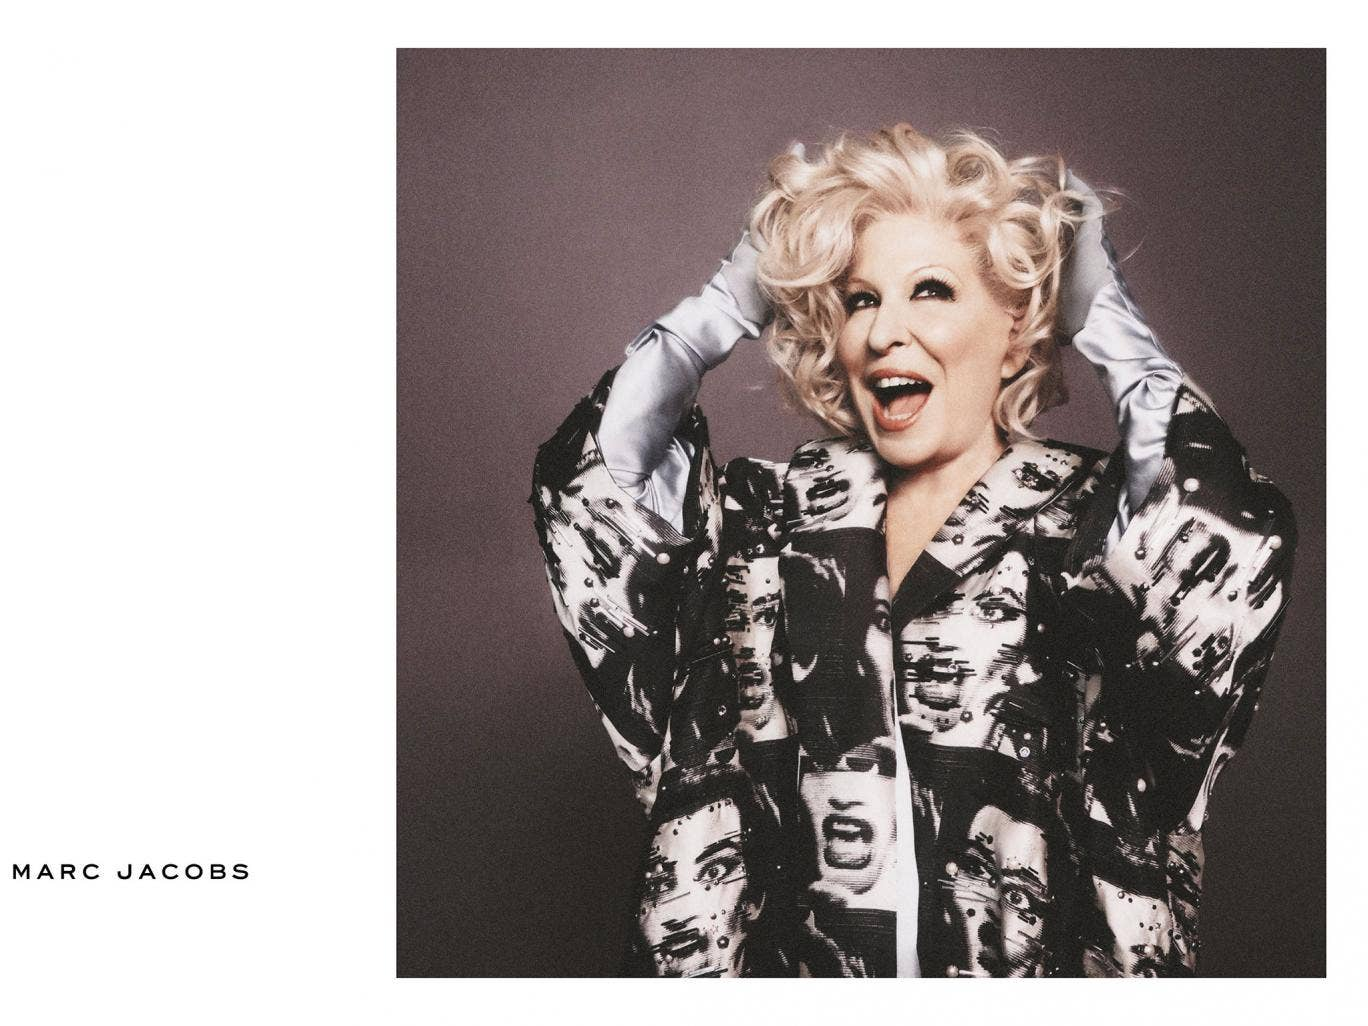 Bette Midler features prominently in Marc Jacobs' spring/summer 2016 campaign